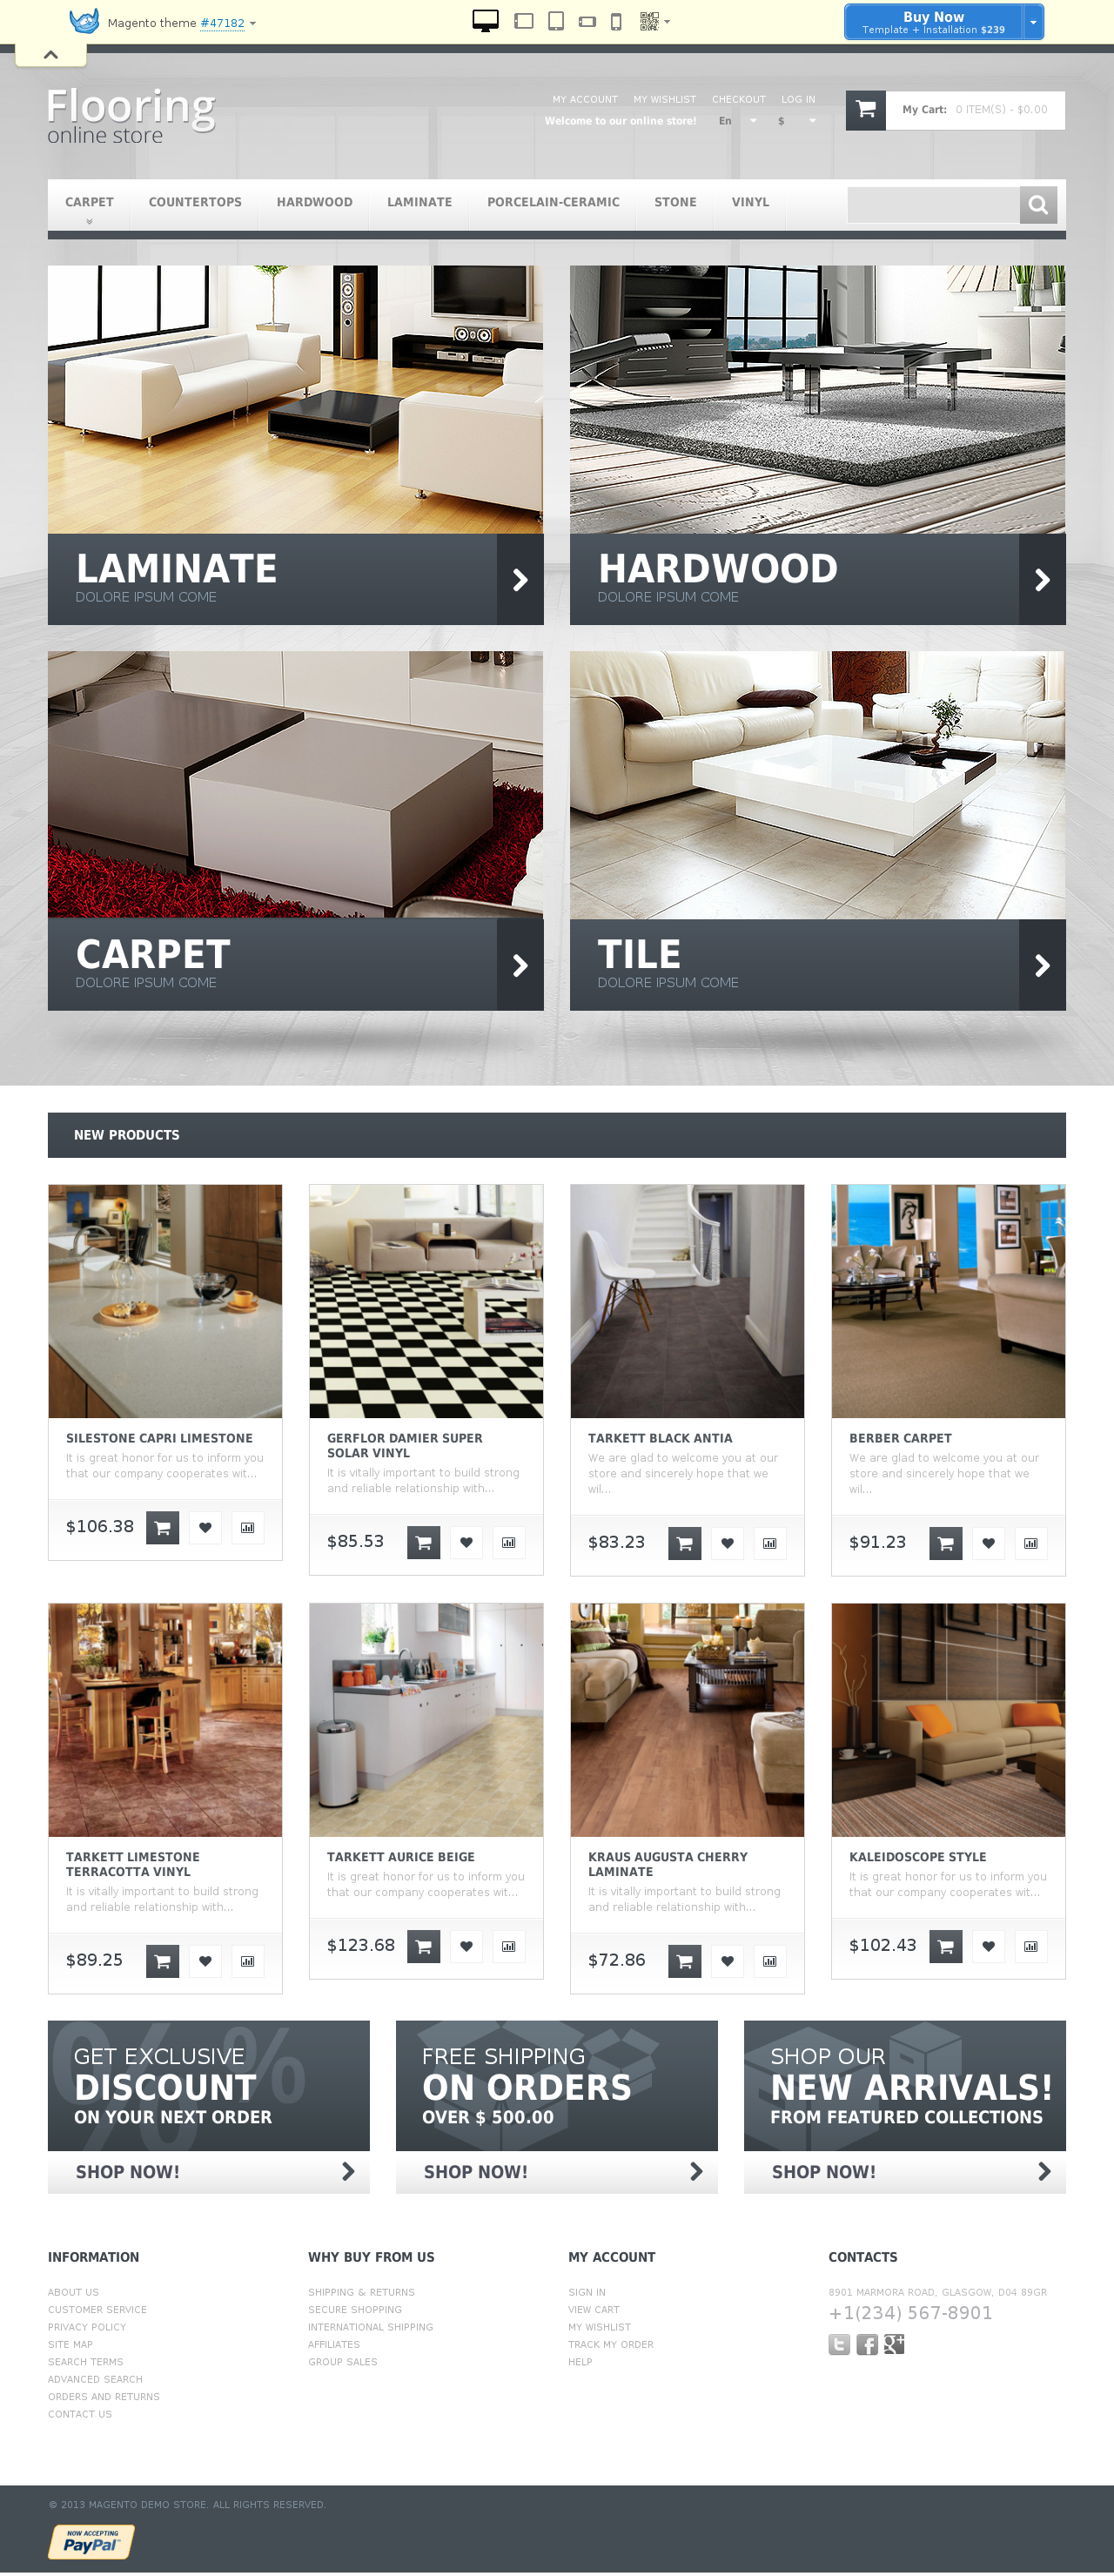 Durable Flooring Magento Theme #47182